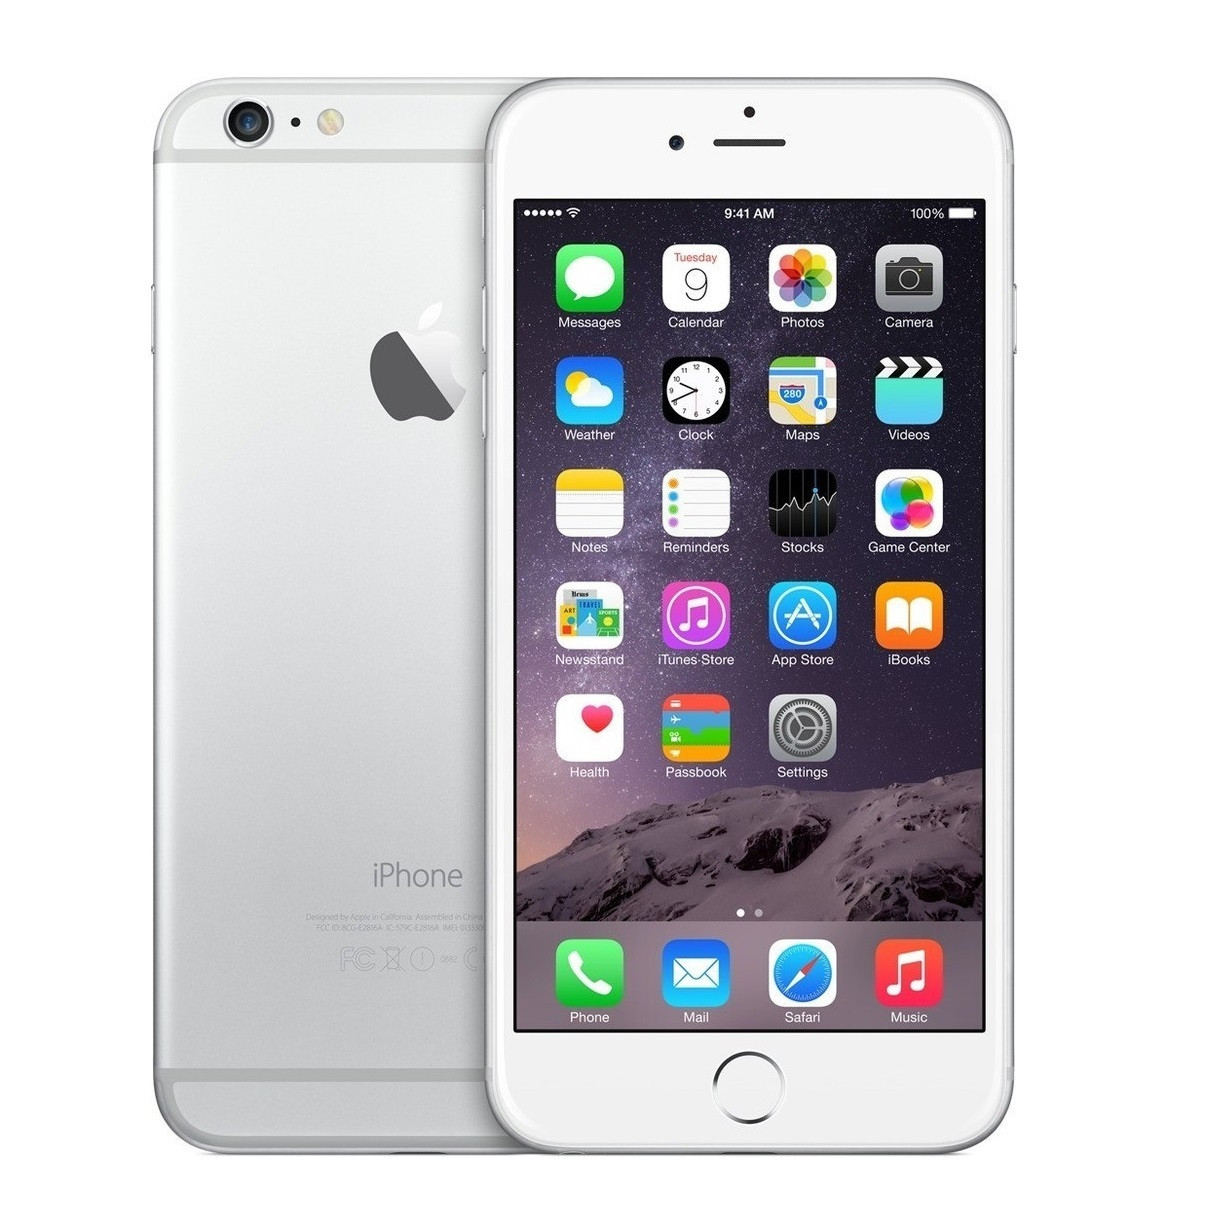 verizon iphone 6 plus apple cpo iphone 6 plus 16gb unlocked smartphone a1524 16395